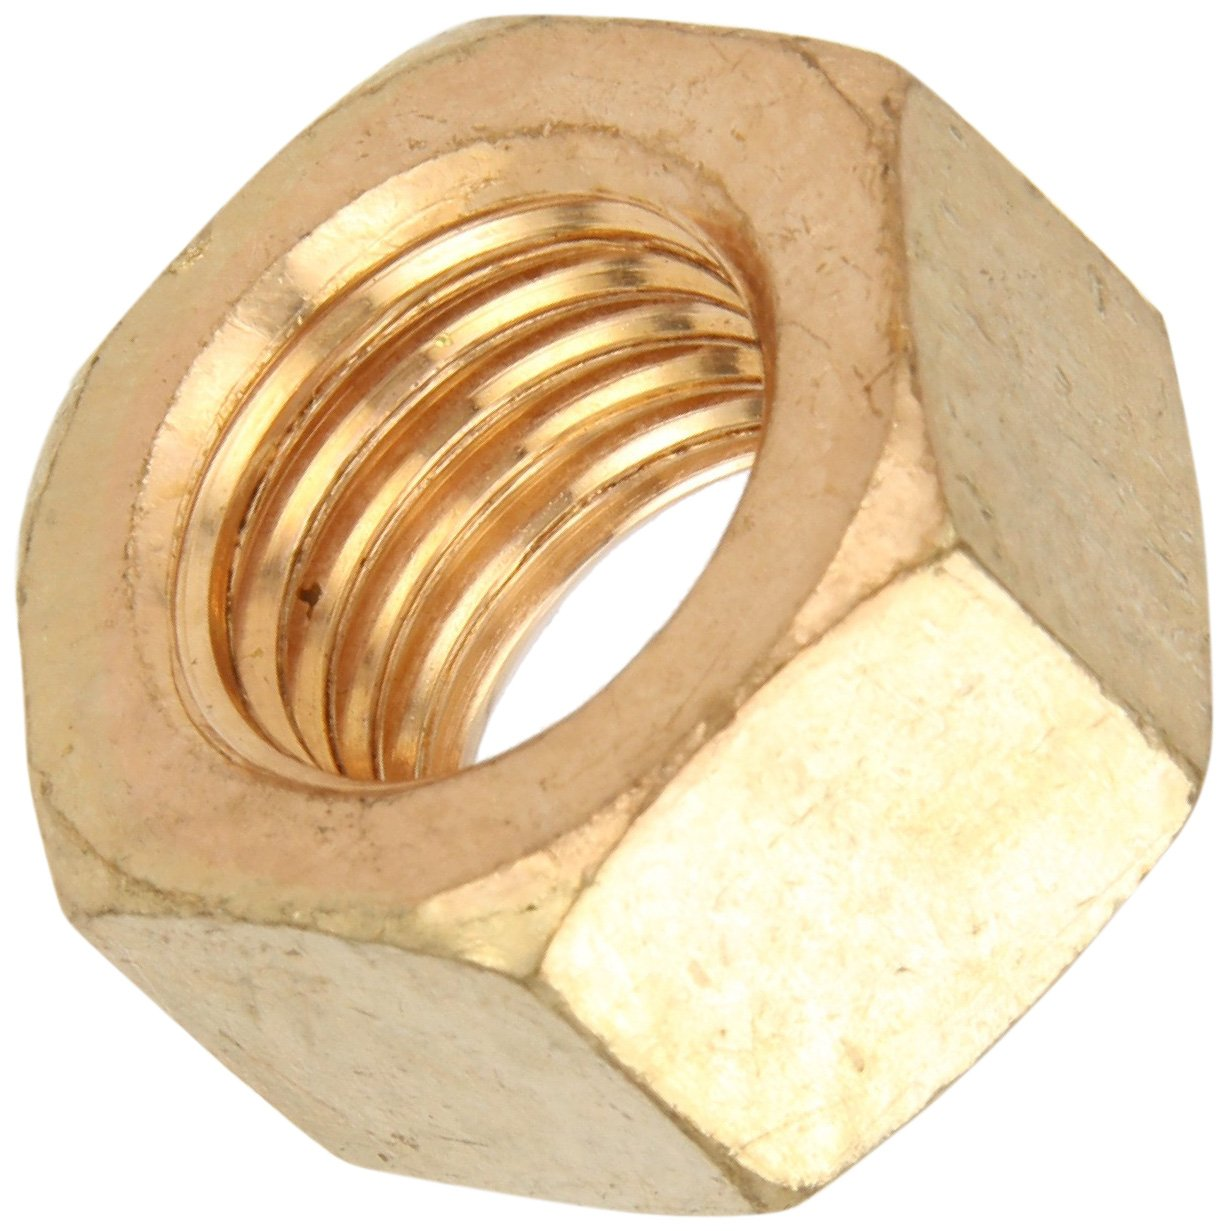 Silicon Bronze Hex Nut, Plain Finish, ASME B18.2.2, 7/8''-9 Thread Size, 1-5/16'' Width Across Flats, 3/4'' Thick